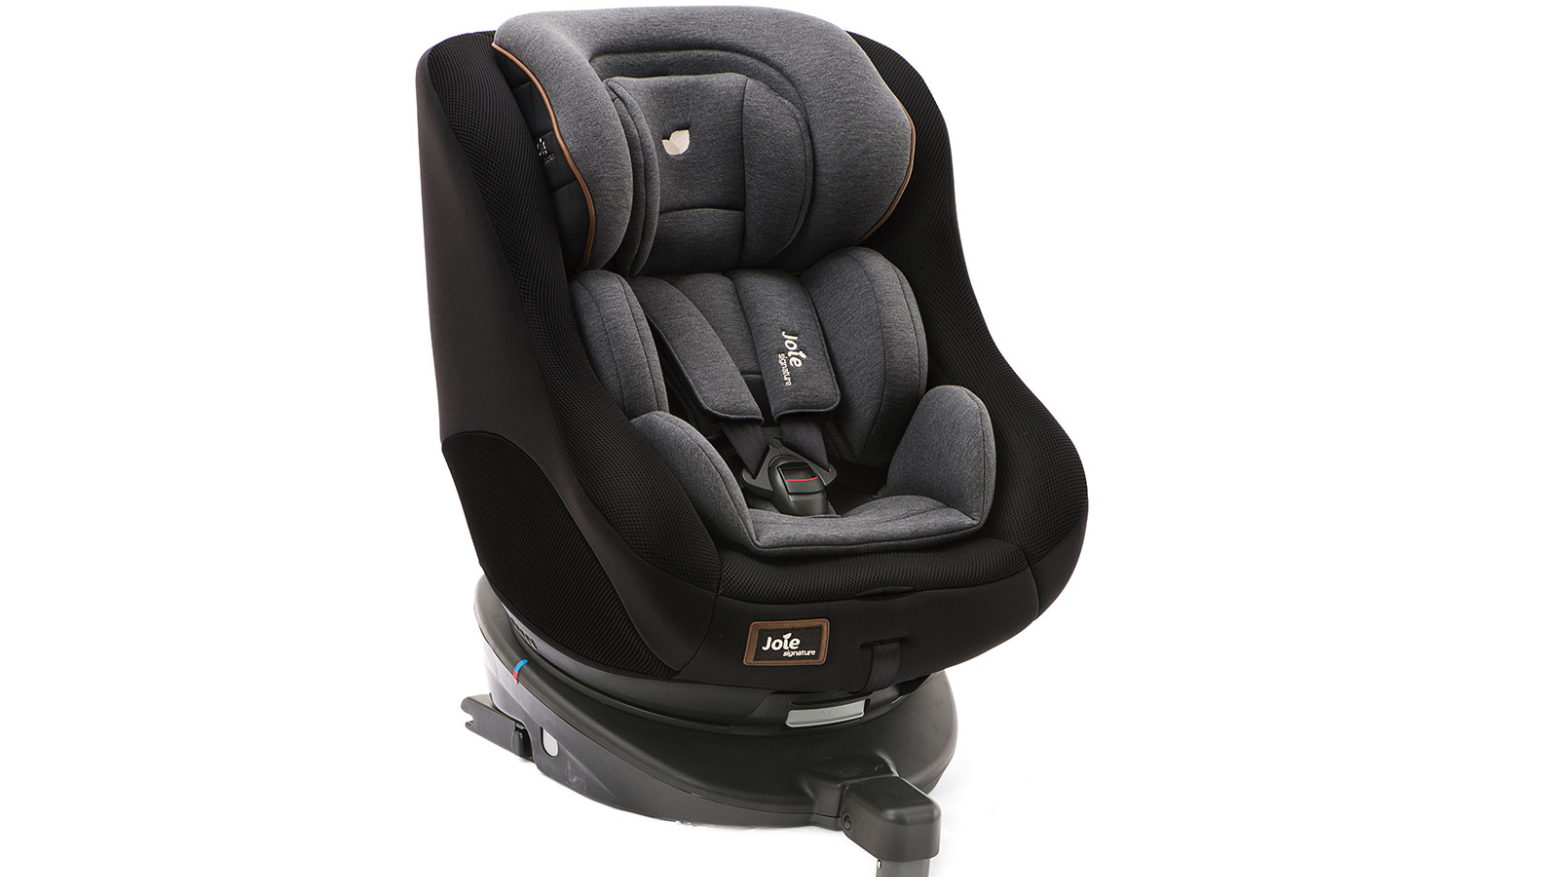 Best car seats 2019: Discover which is the